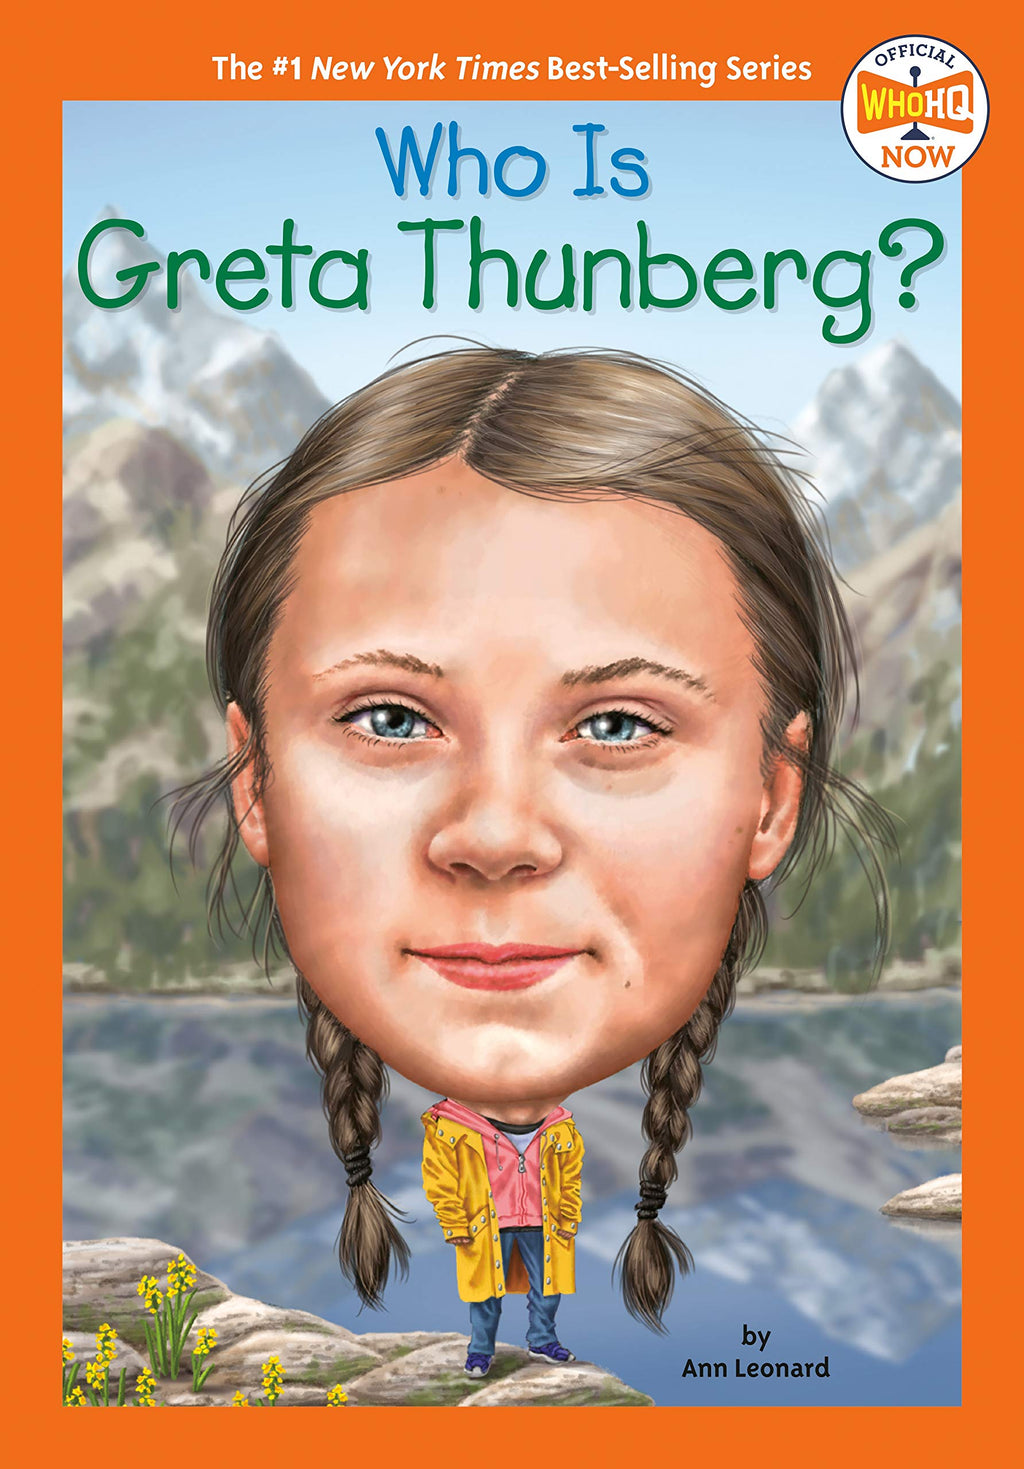 The inspiring story of a young Swedish schoolgirl who sparked a worldwide climate change revolution. This exciting story details the defining moments in Greta's childhood that led up to her now-famous strike and all the monumental ones that have fueled her revolution since, including being named Time's Most Influential Person of the Year in 2019.